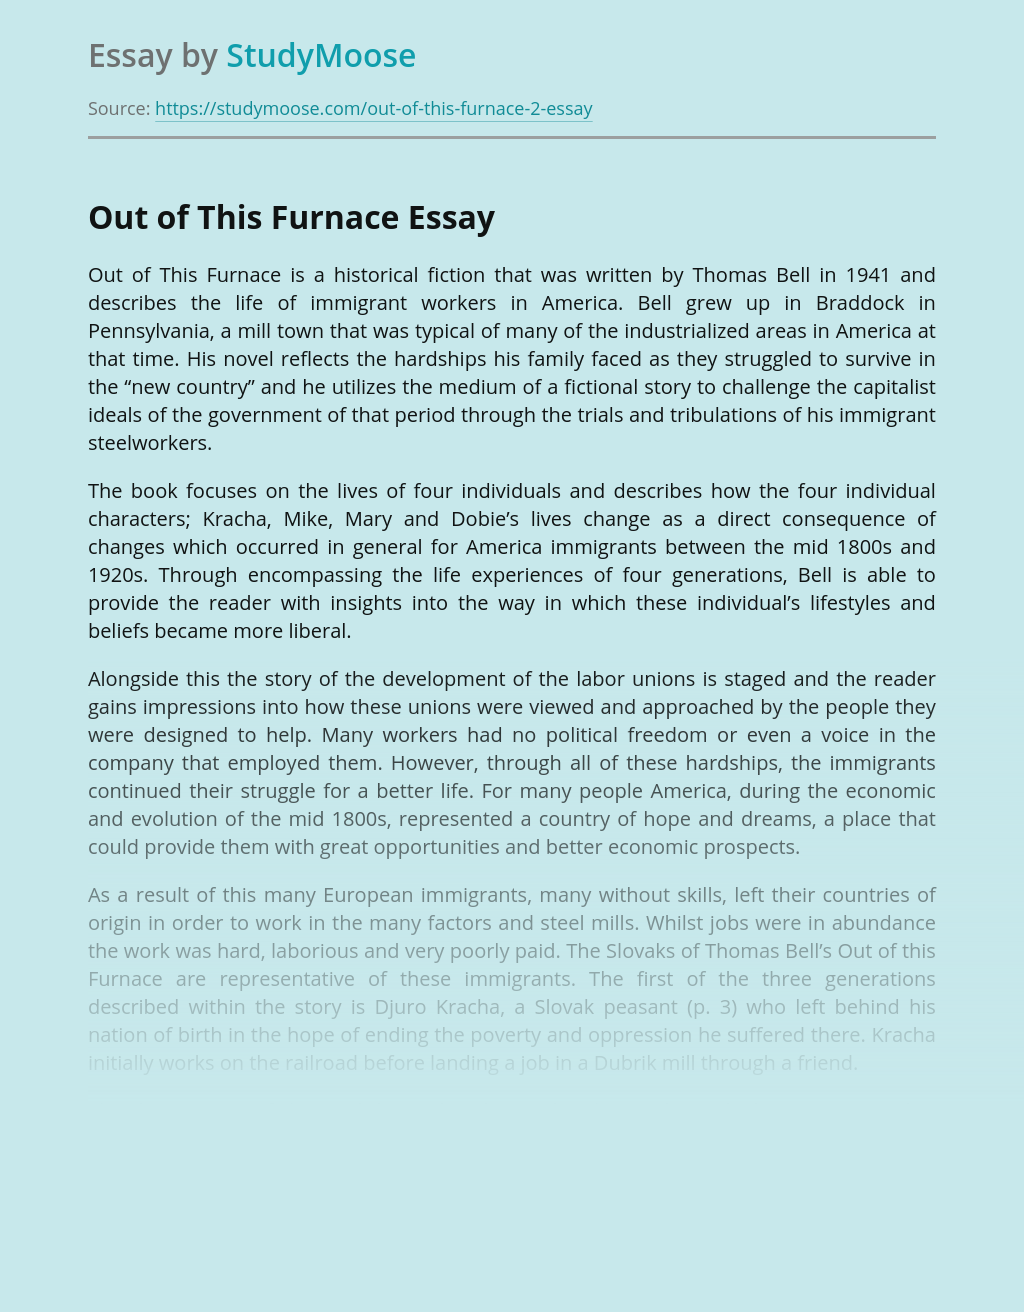 Theme of Rights in Out of This Furnace